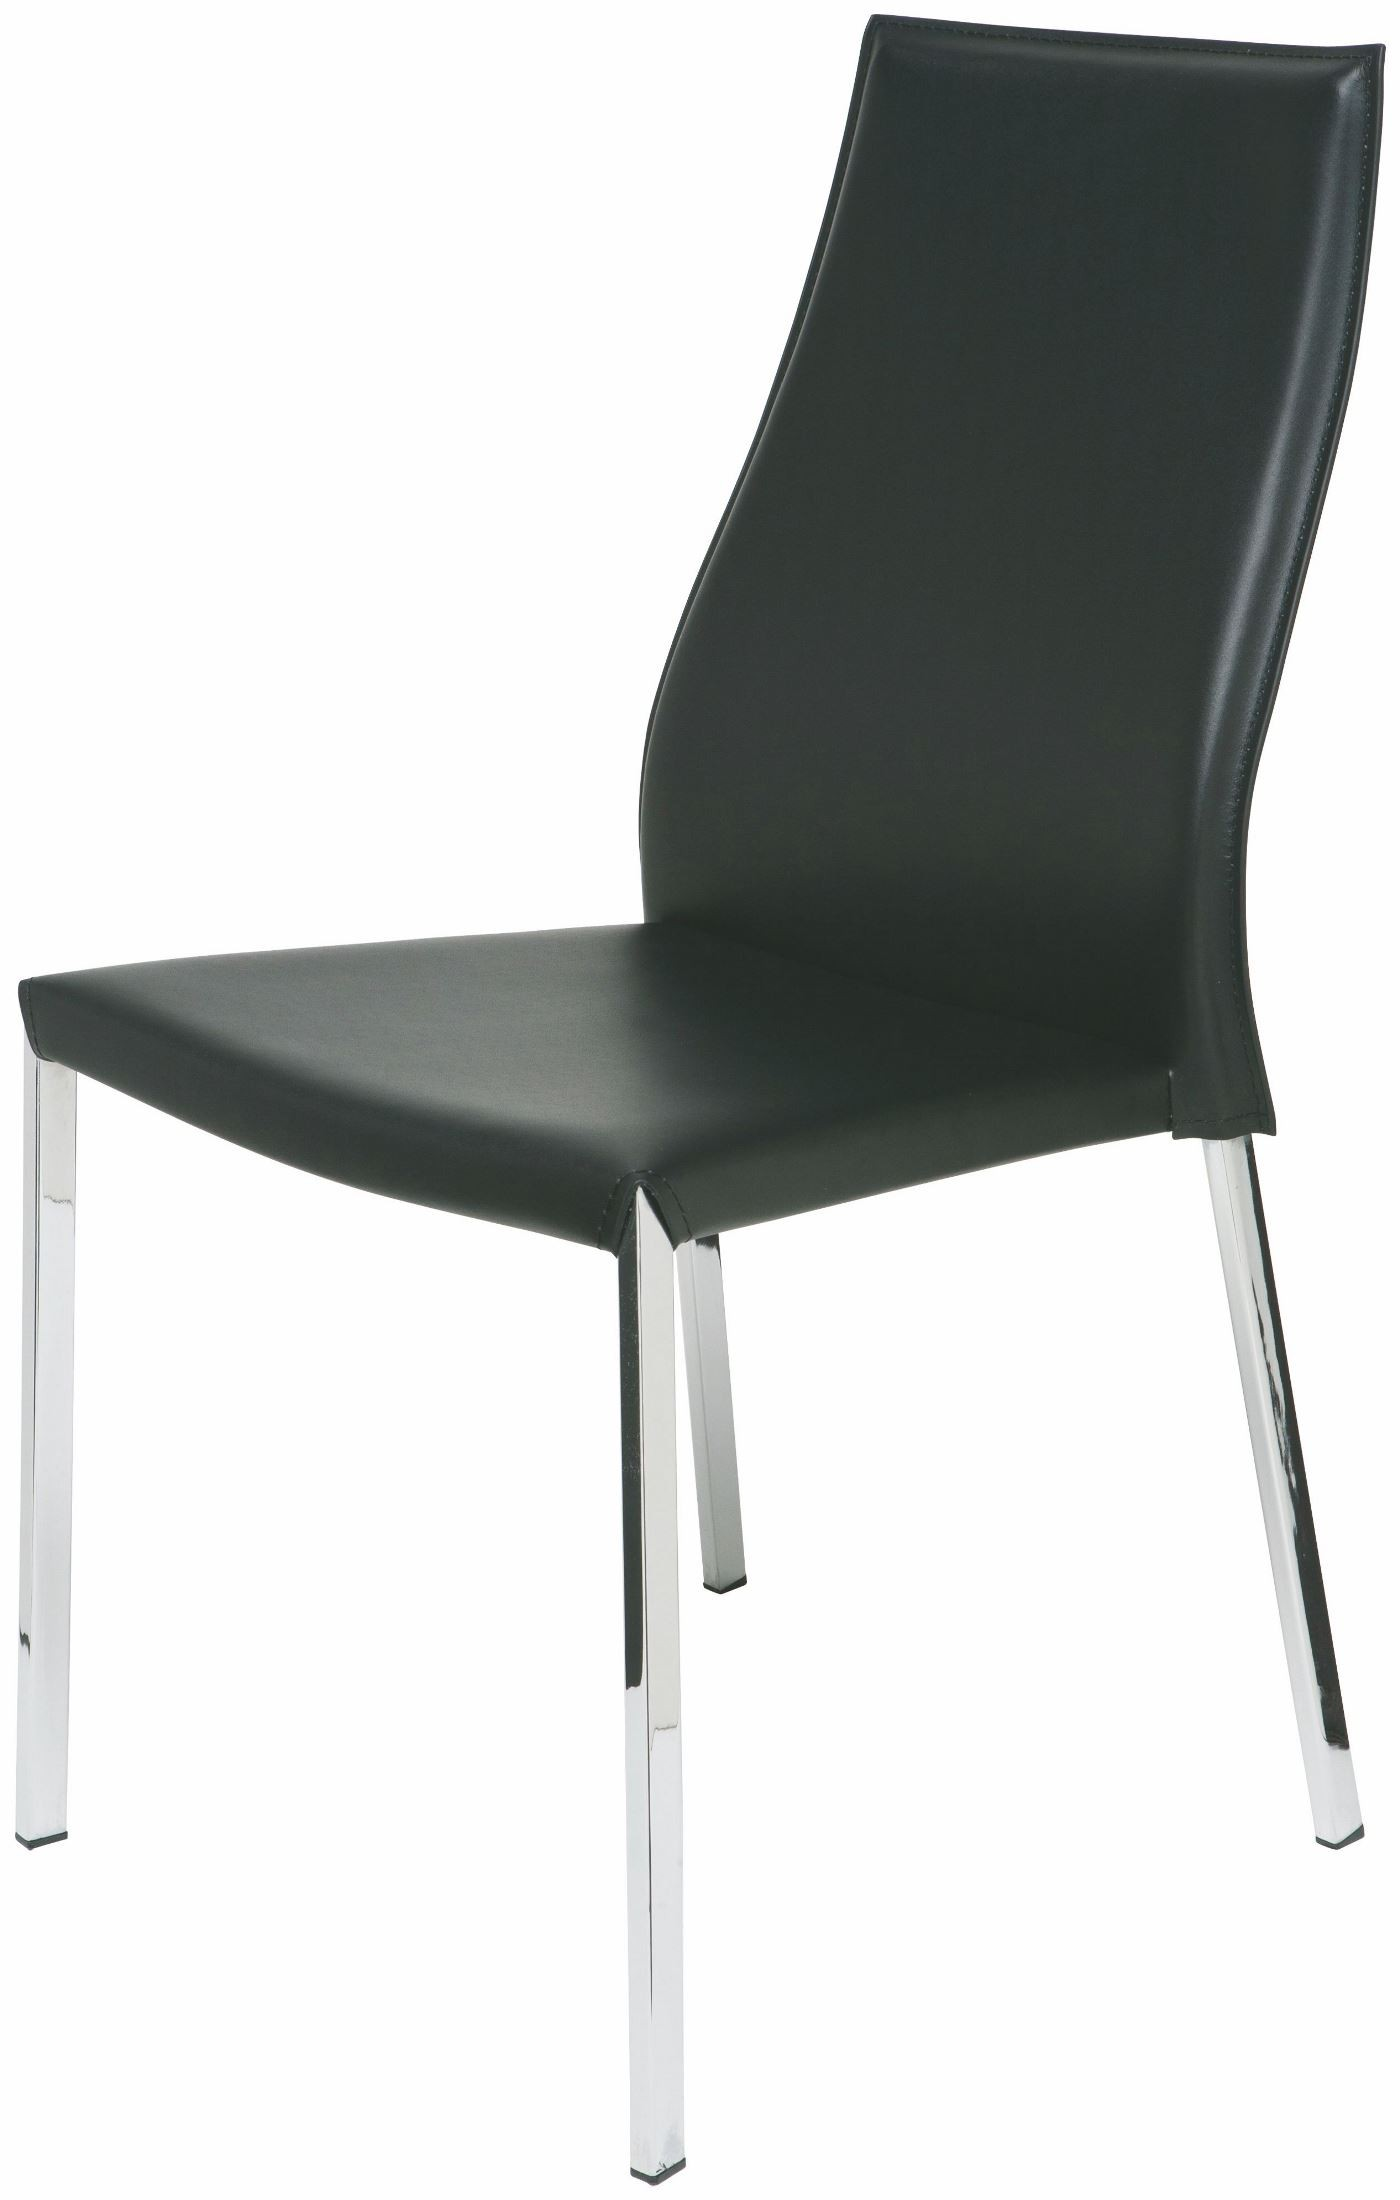 Black Leather Dining Chairs Eric Black Leather Dining Chair From Nuevo Coleman Furniture